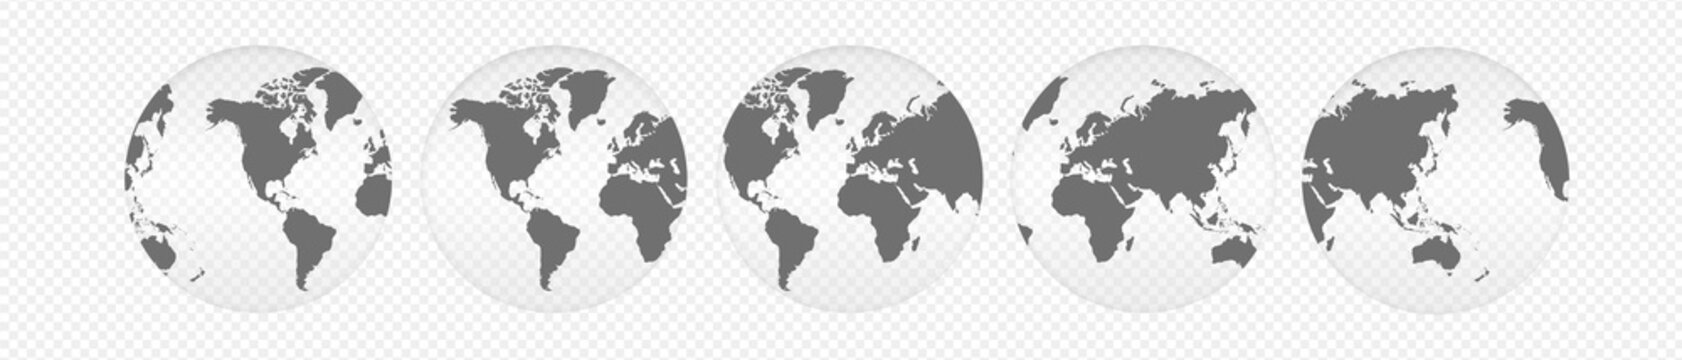 Realistic World Map On Globe Shape With Transparent Shadow Isolated With Clipping Path. Globes of Earth. Blue Planet Icon Symbols.